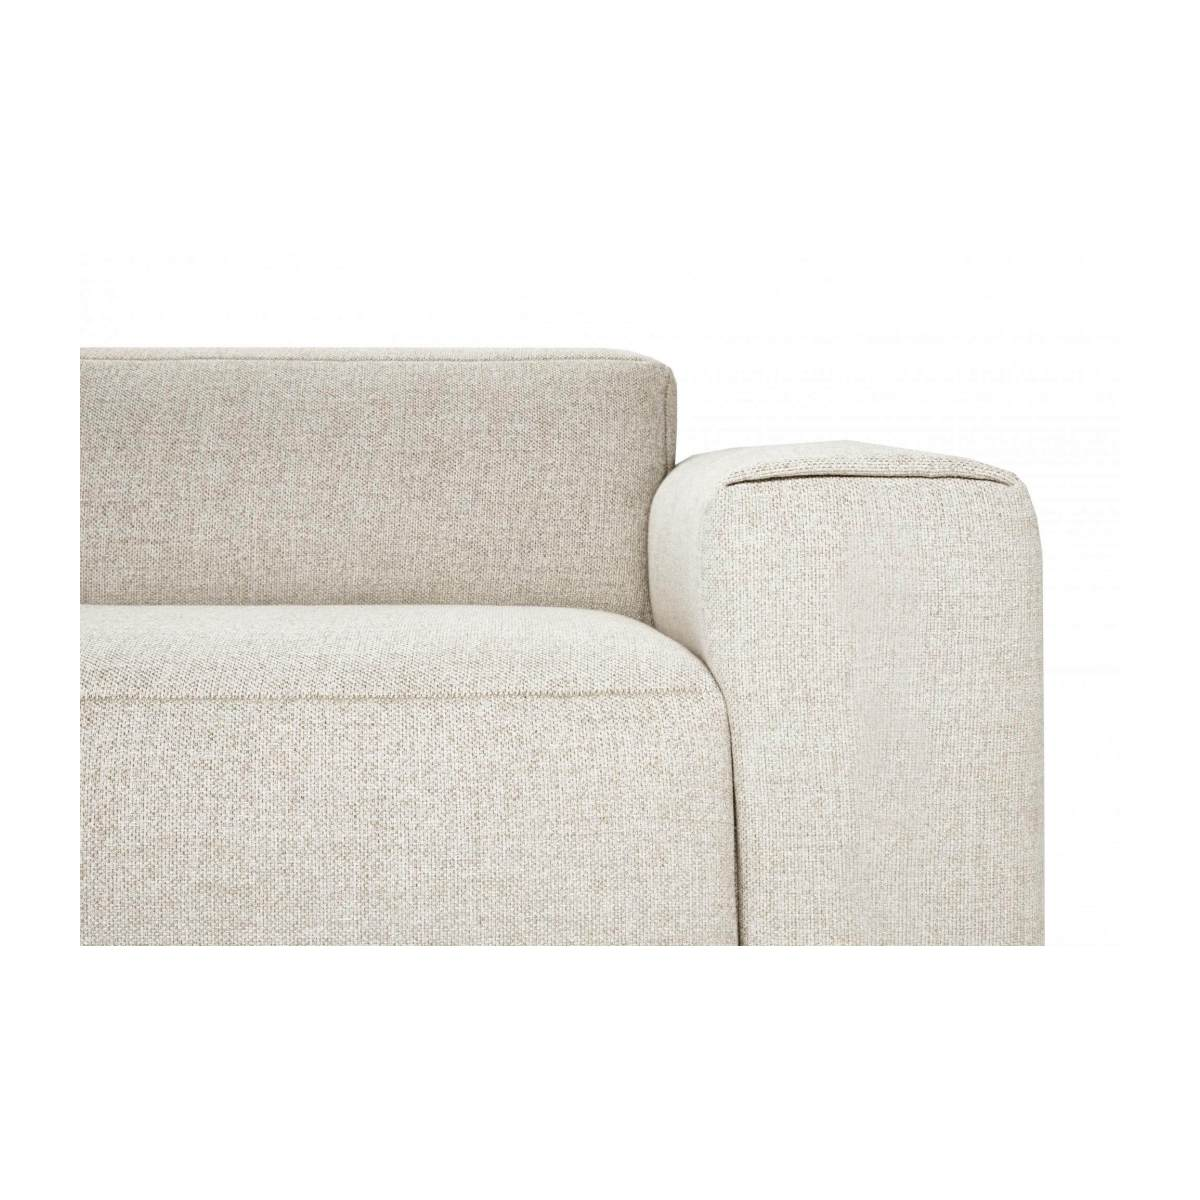 4 seater sofa in Lecce fabric, nature n°5